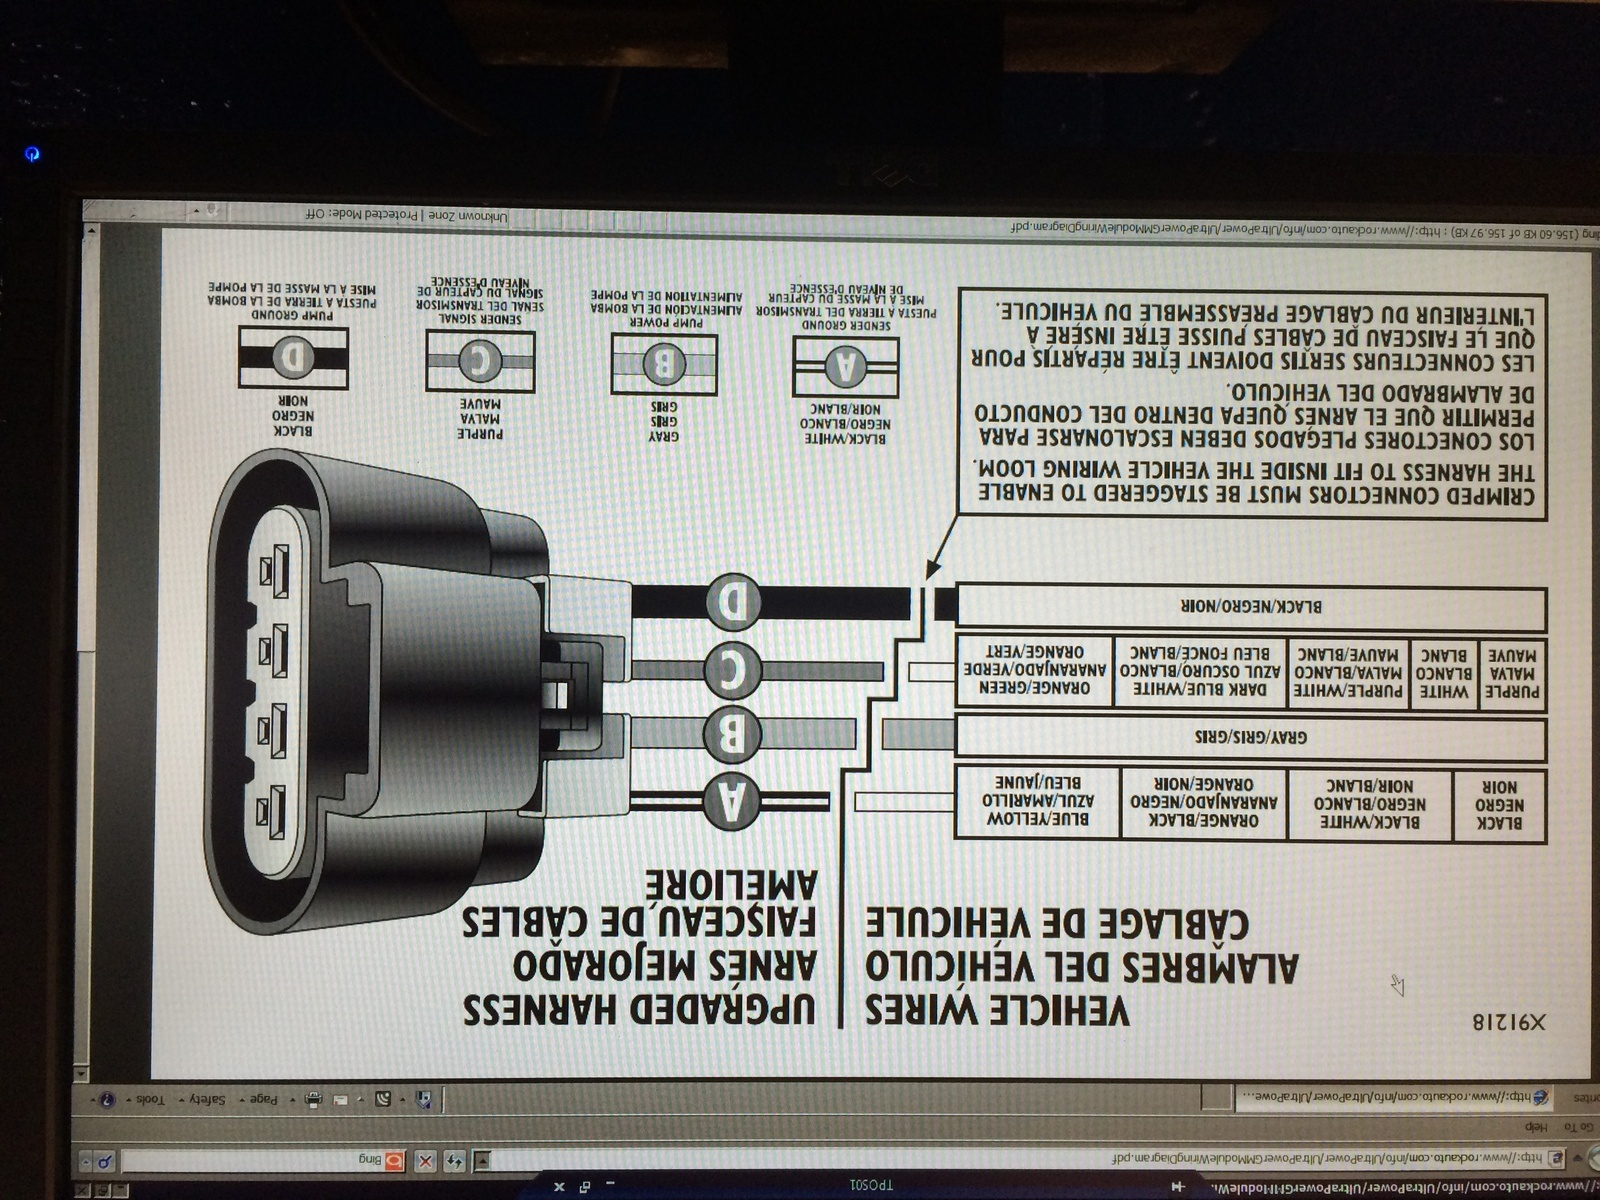 Fuel Pump Wiring Diagram Chevy Vega Manual Of For 1976 Monza Detailed Schematics Rh Technograffito Com